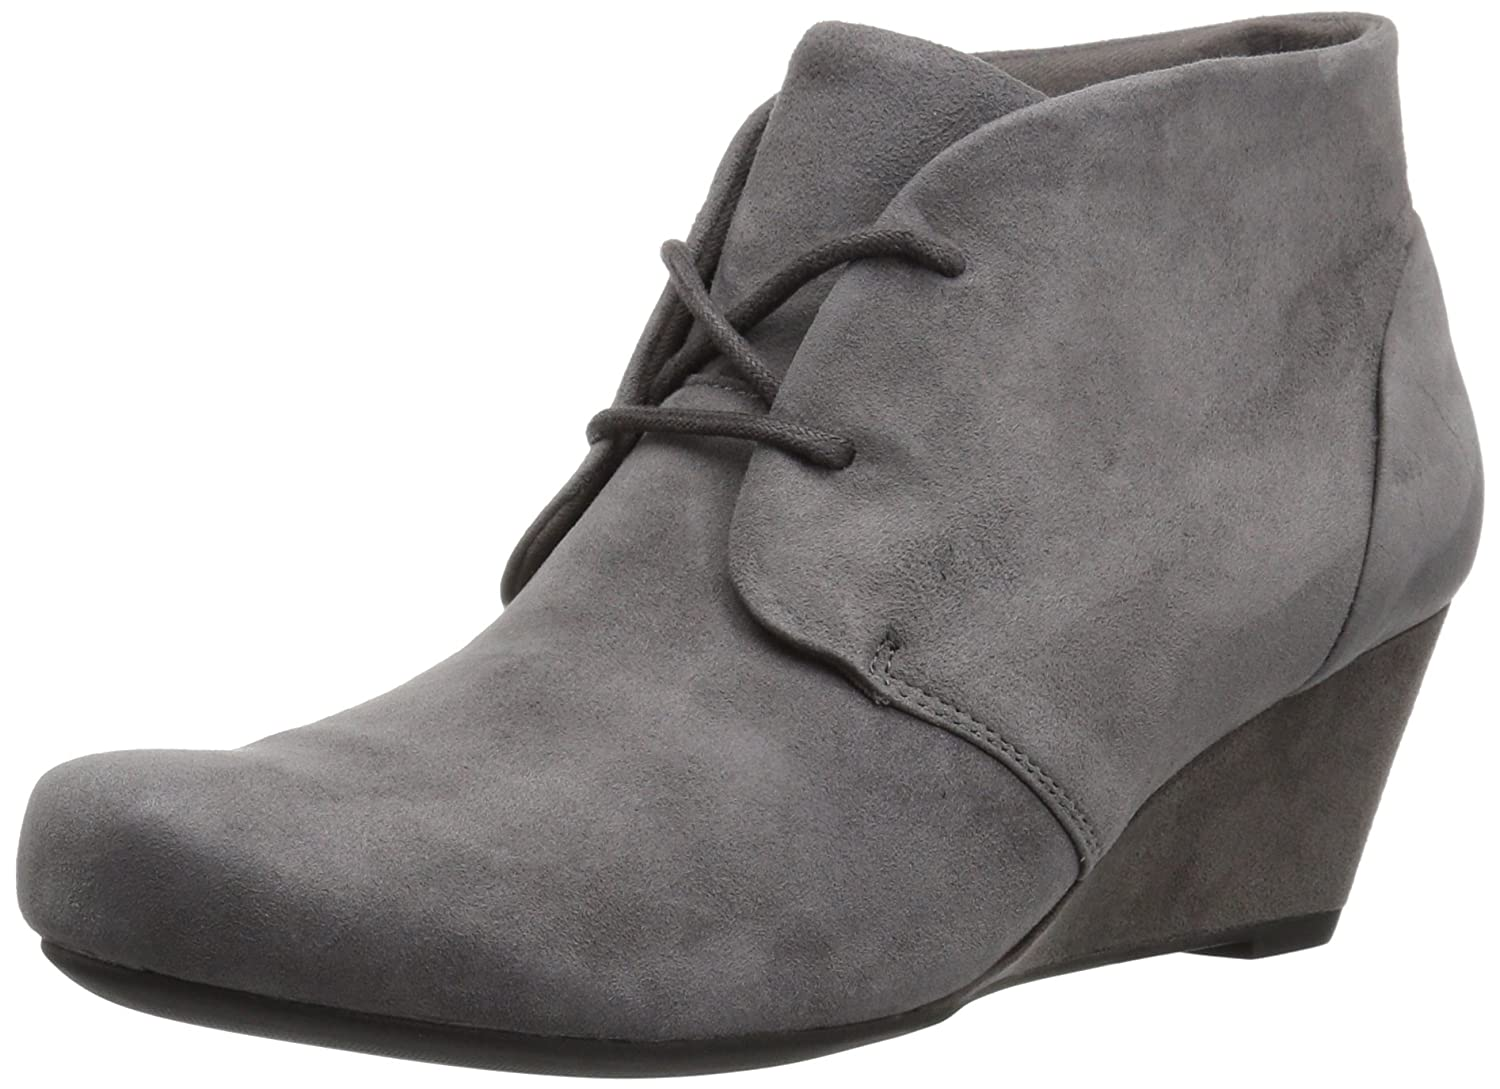 Grey Suede Clarks Women's Flores pink Ankle Boot